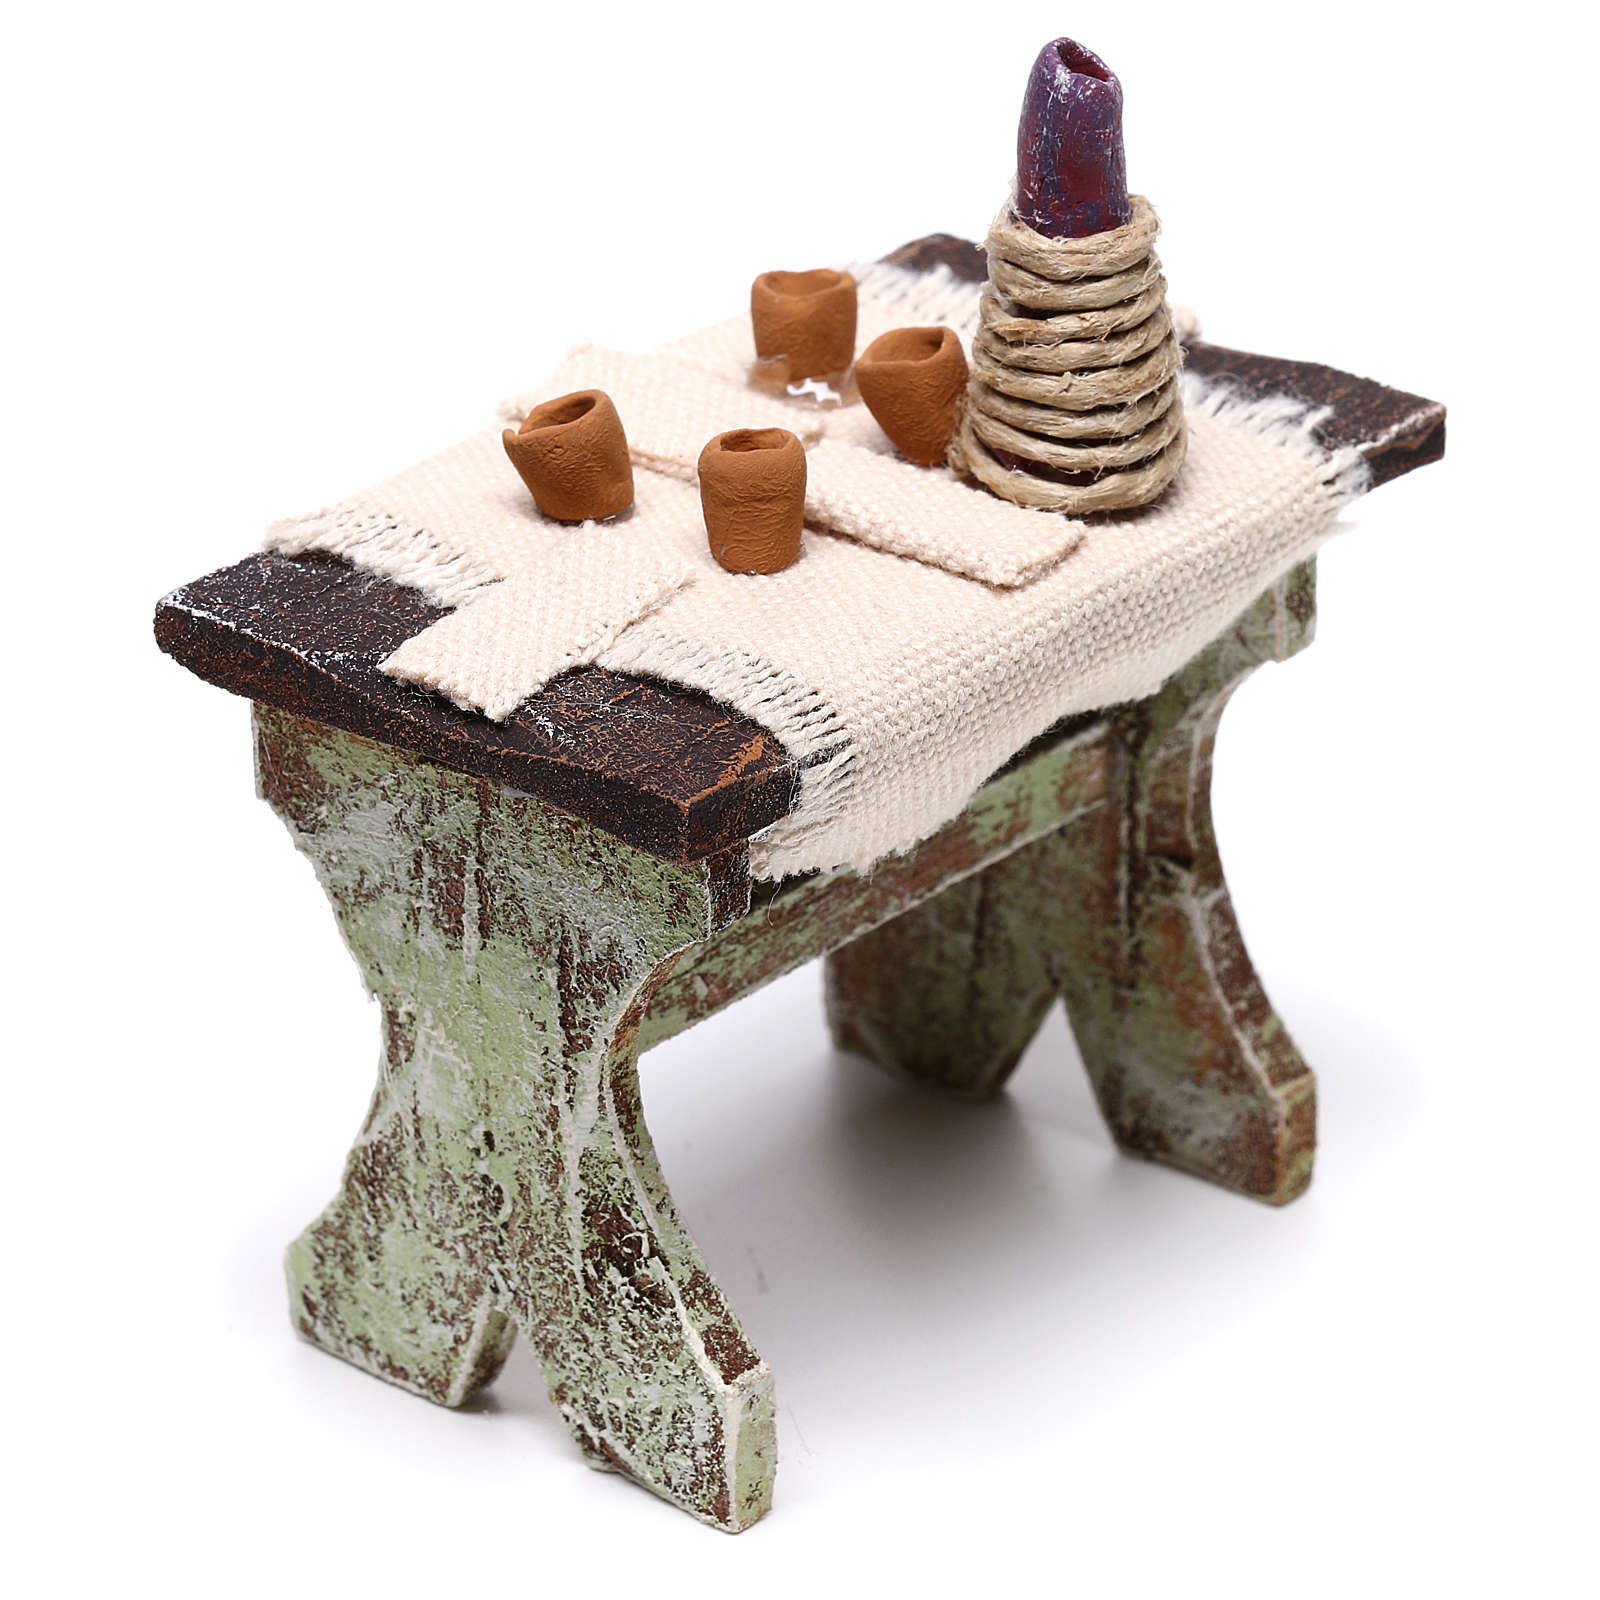 Table with 4 chairs for Nativity scene of 12 cm 5x5x5 cm 4